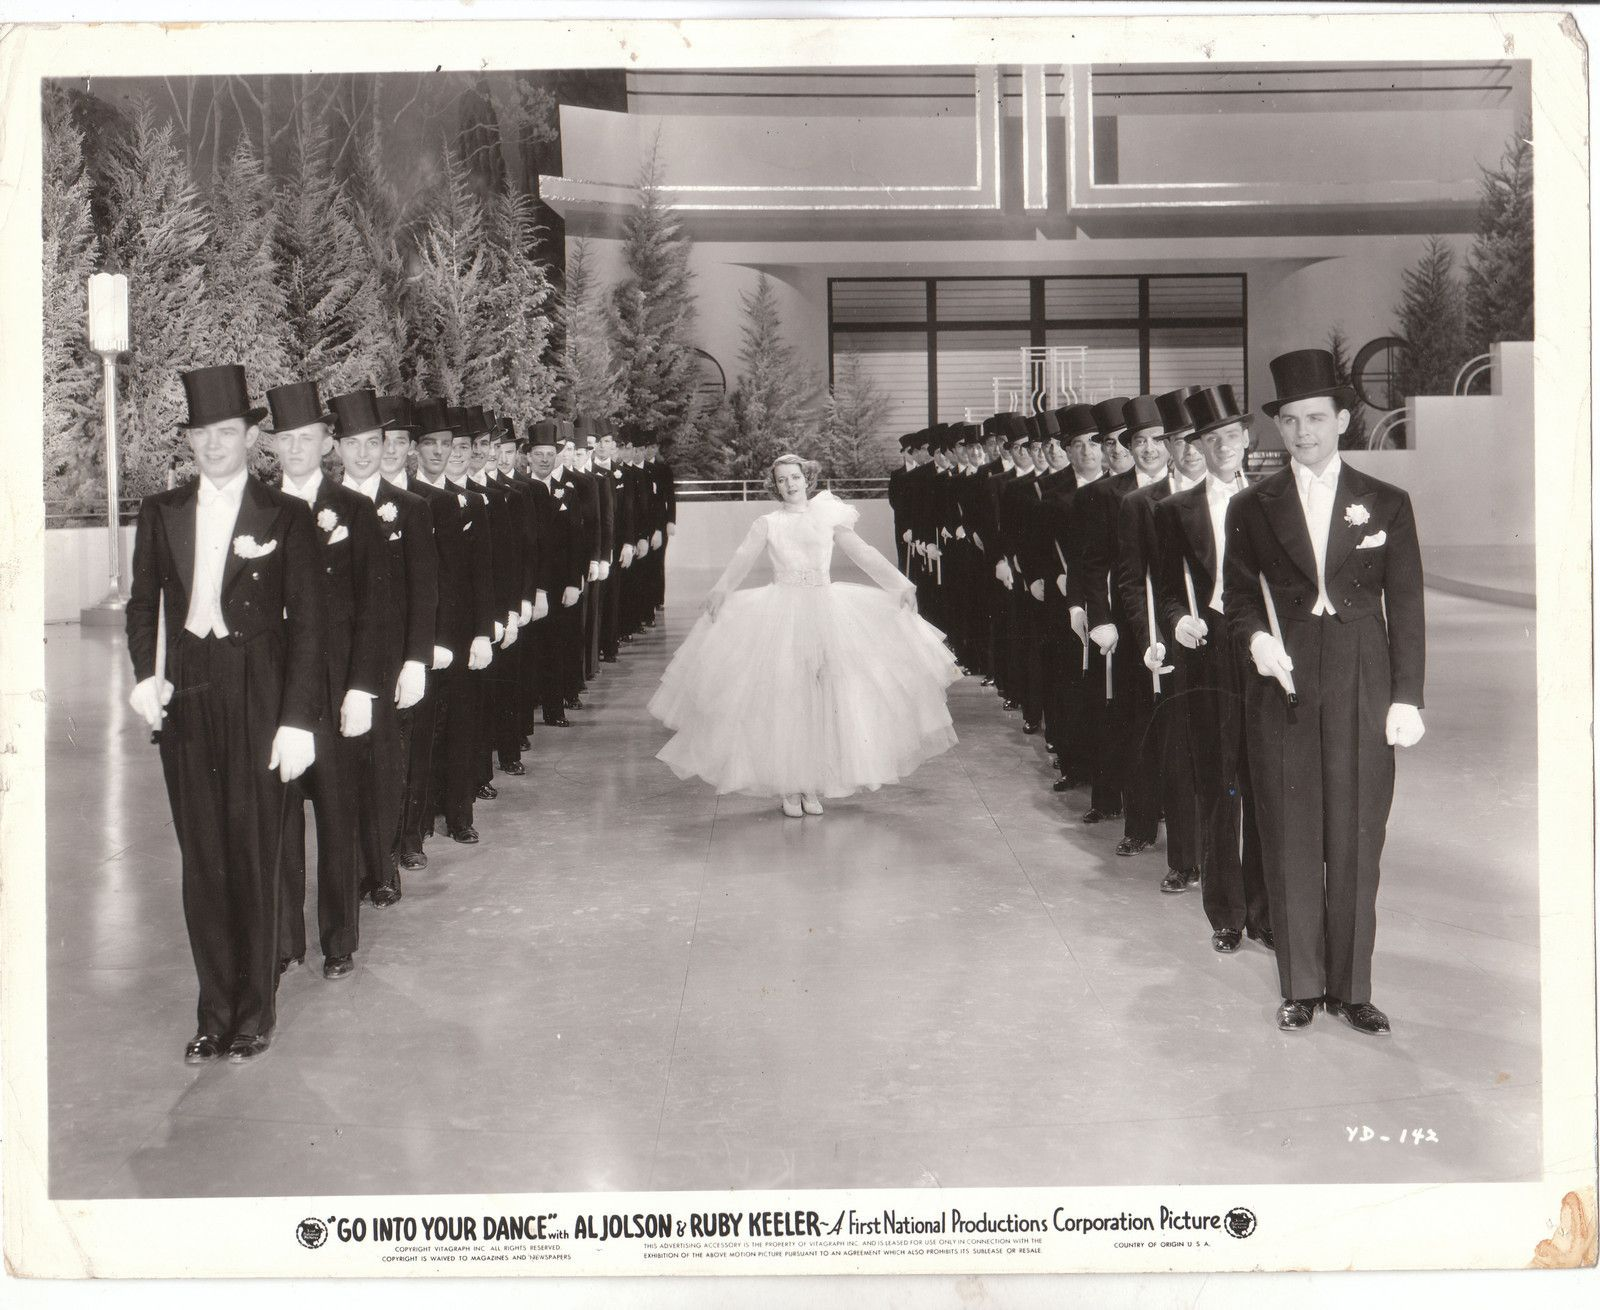 Al Jolson and Ruby Keeler in Got to Dance 1935 was a big production and did well.  Ruby's gowns were gorgeous.